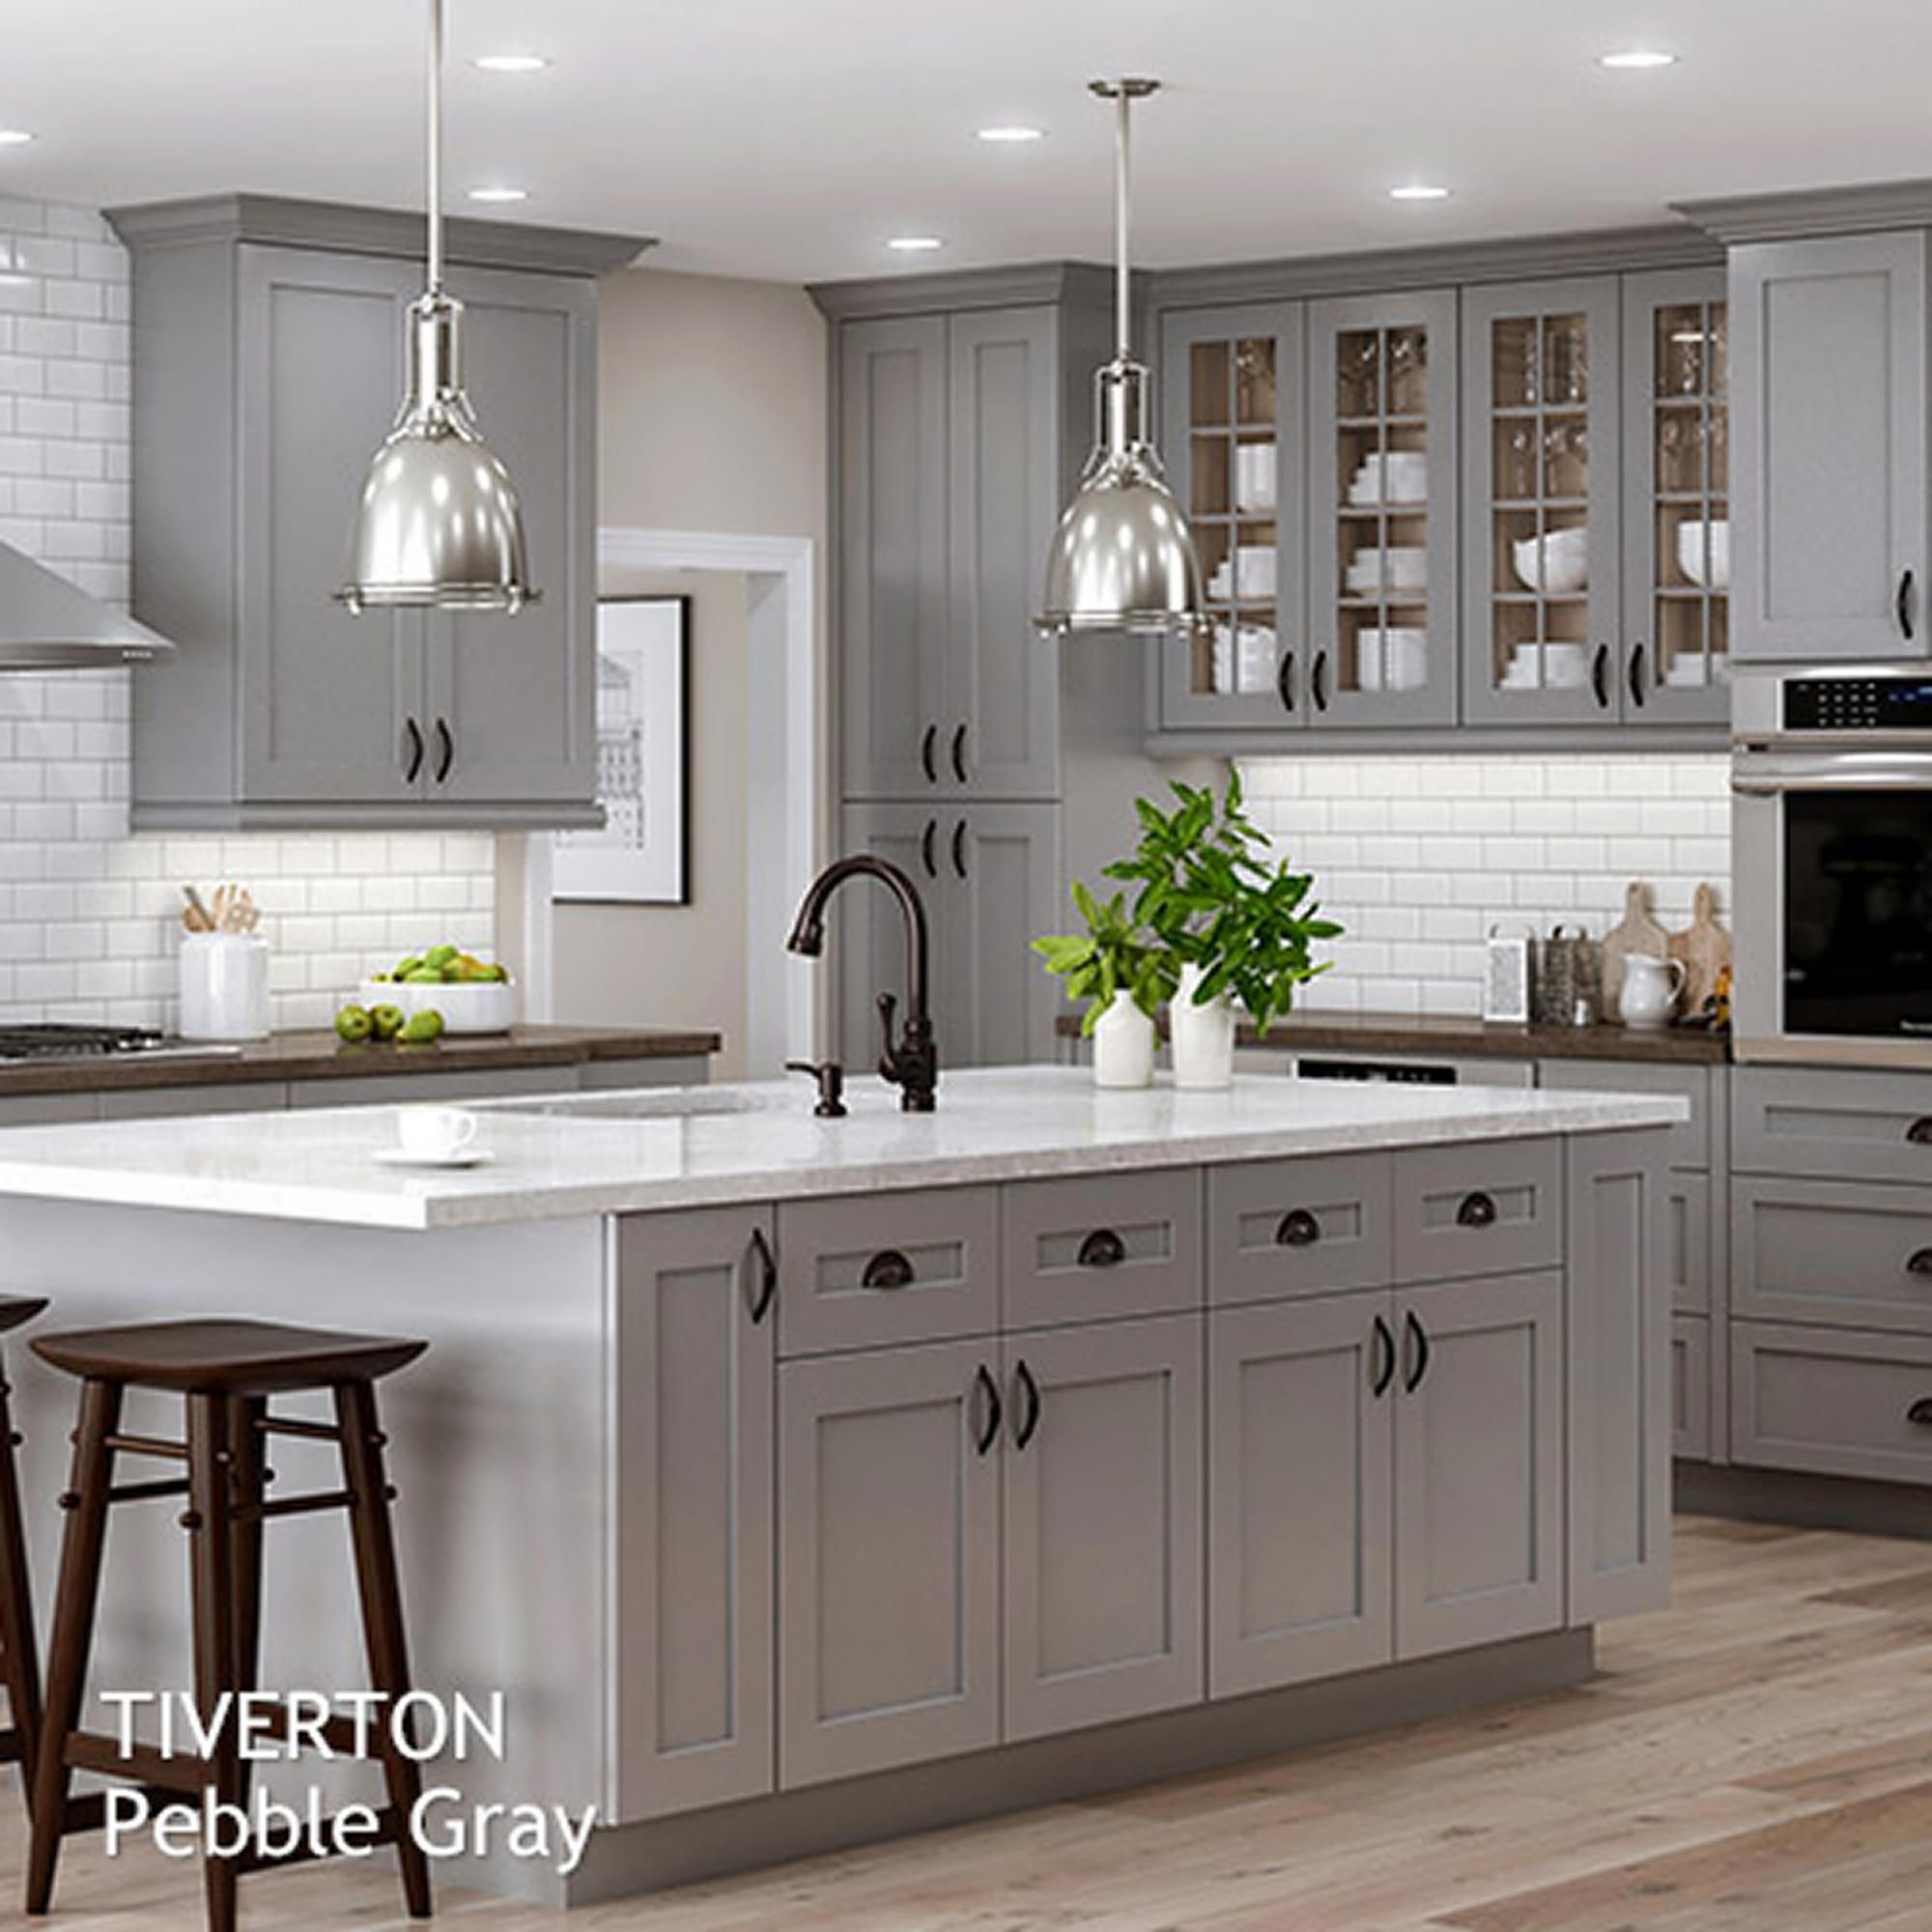 20 Ideas For Grey Kitchens Both: 20 Mind-Blowing Gray Kitchen Cabinets Design Ideas